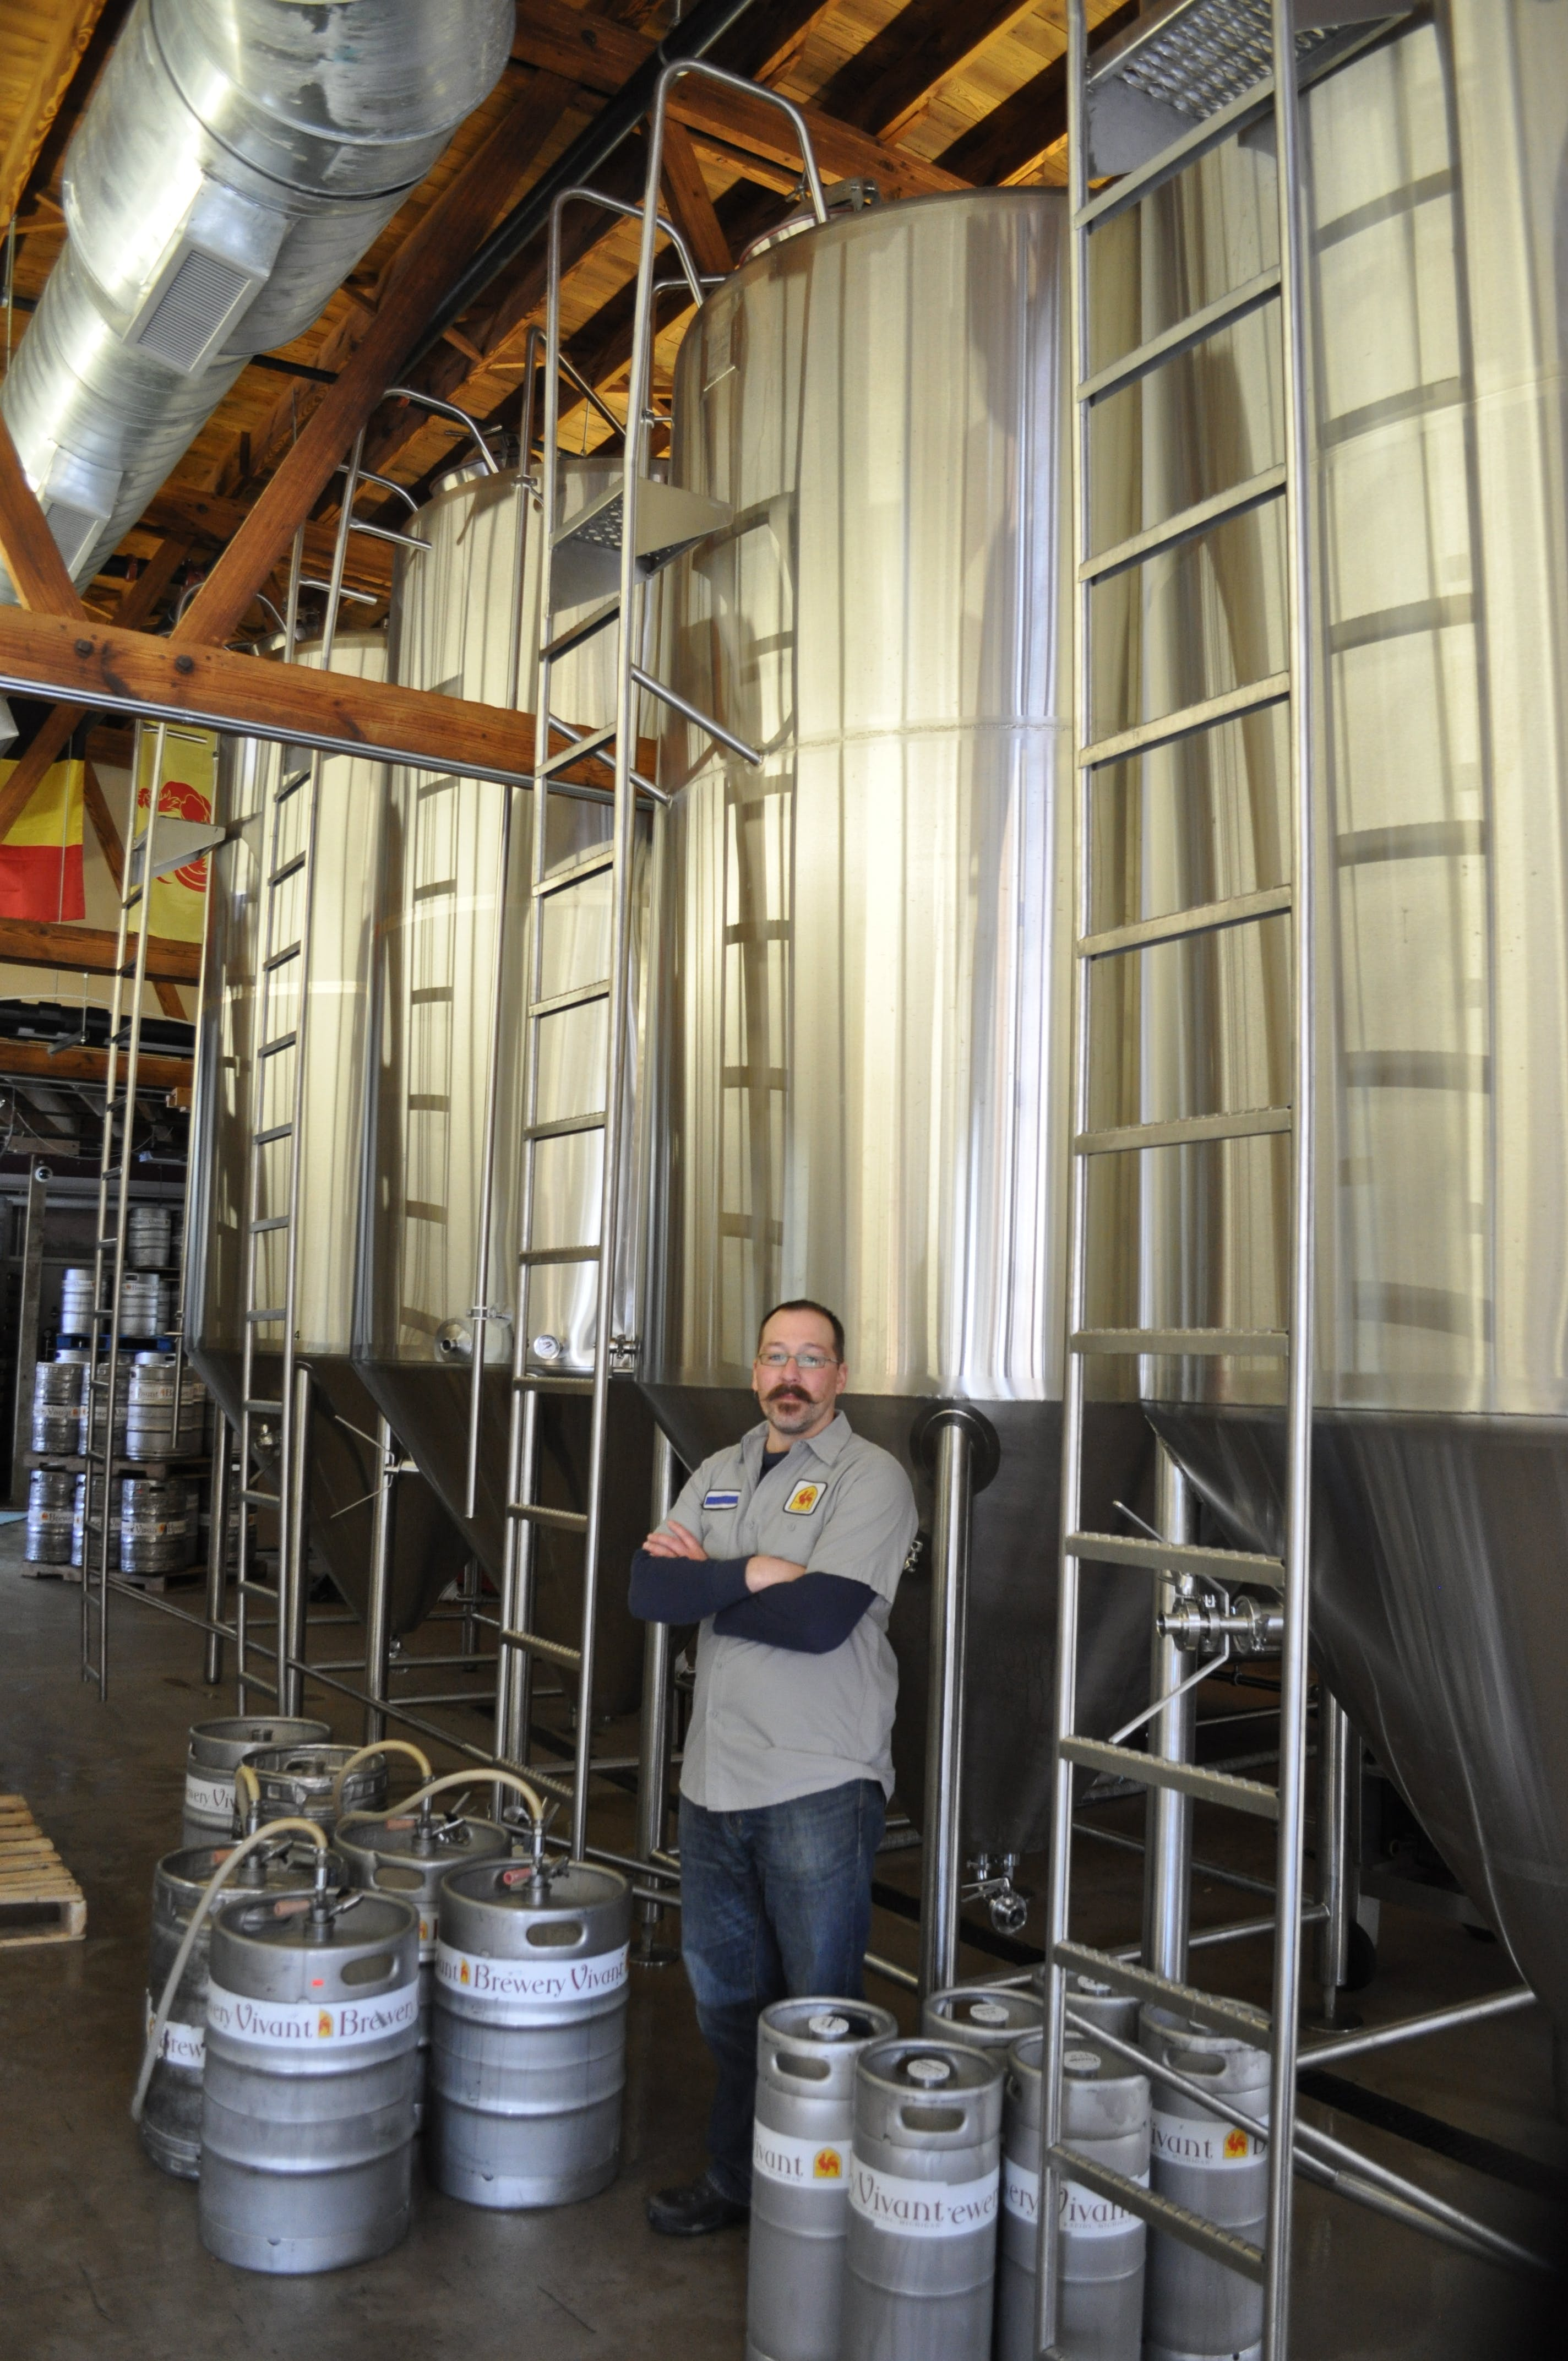 20 BBL, 3 Vessel Brewhouse Brewhouse sold by W. M. Sprinkman